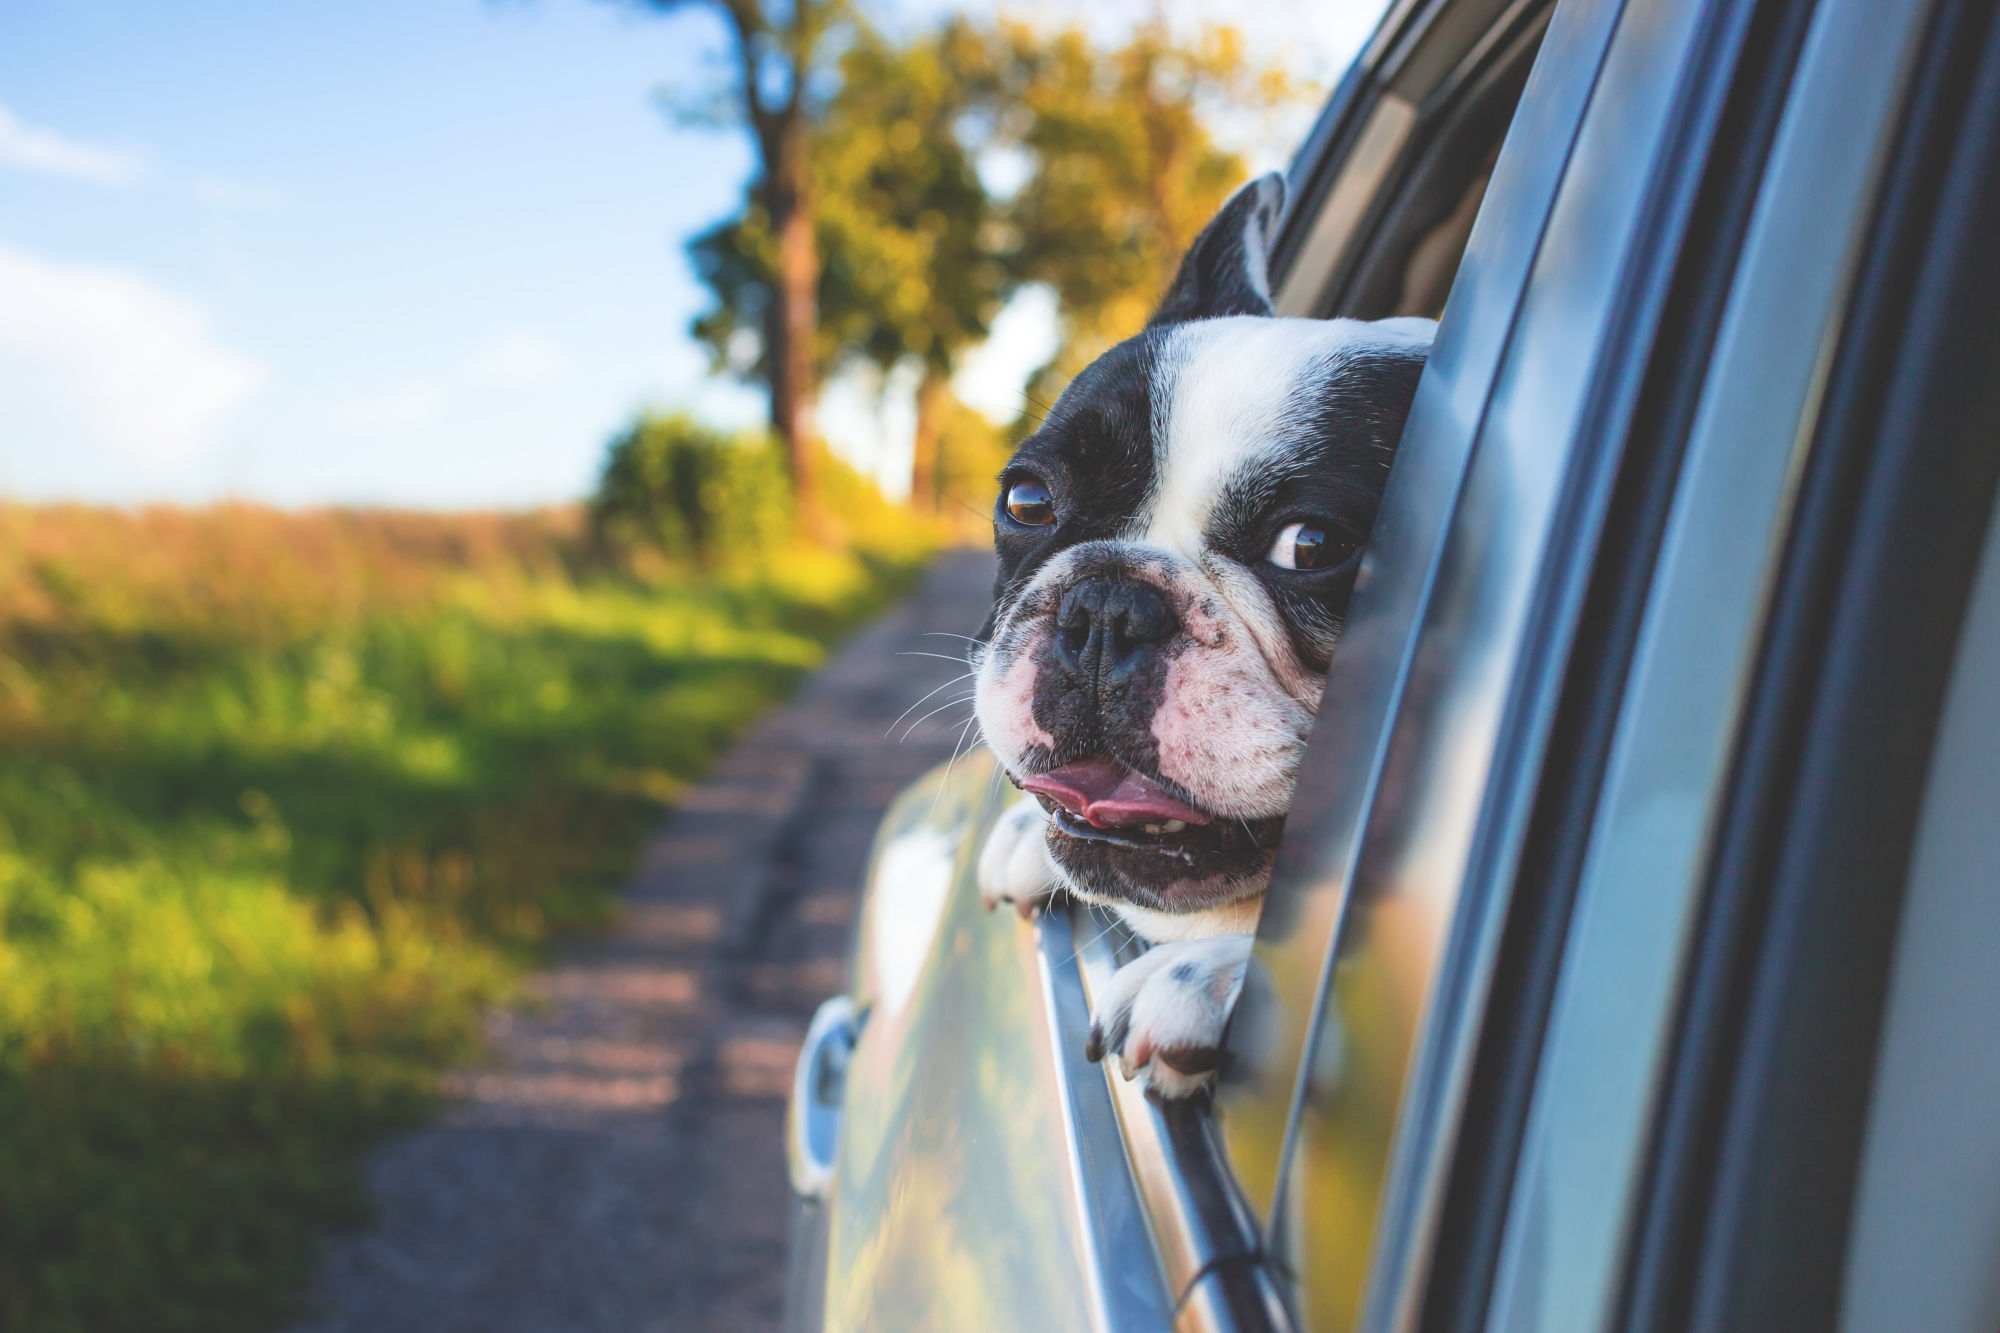 image showing a dog looking out a car window while driving